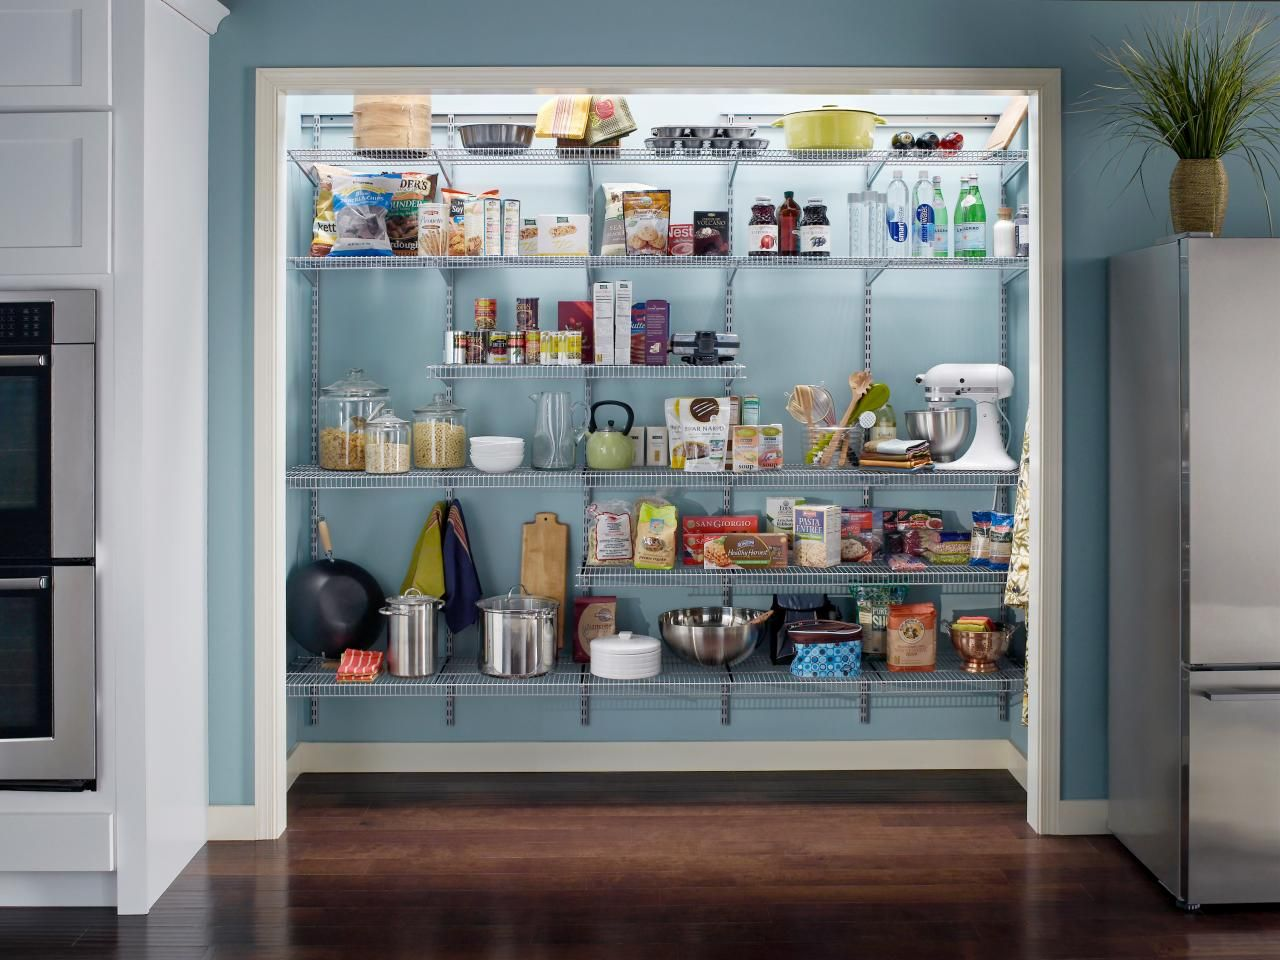 15 Kitchen Pantry Ideas With Form And Function on kitchen pantry shelving, kitchen pantry plans cabinits, kitchen pantry storage, kitchen pantry unit, kitchen pantry closet, kitchen pantry ideas,